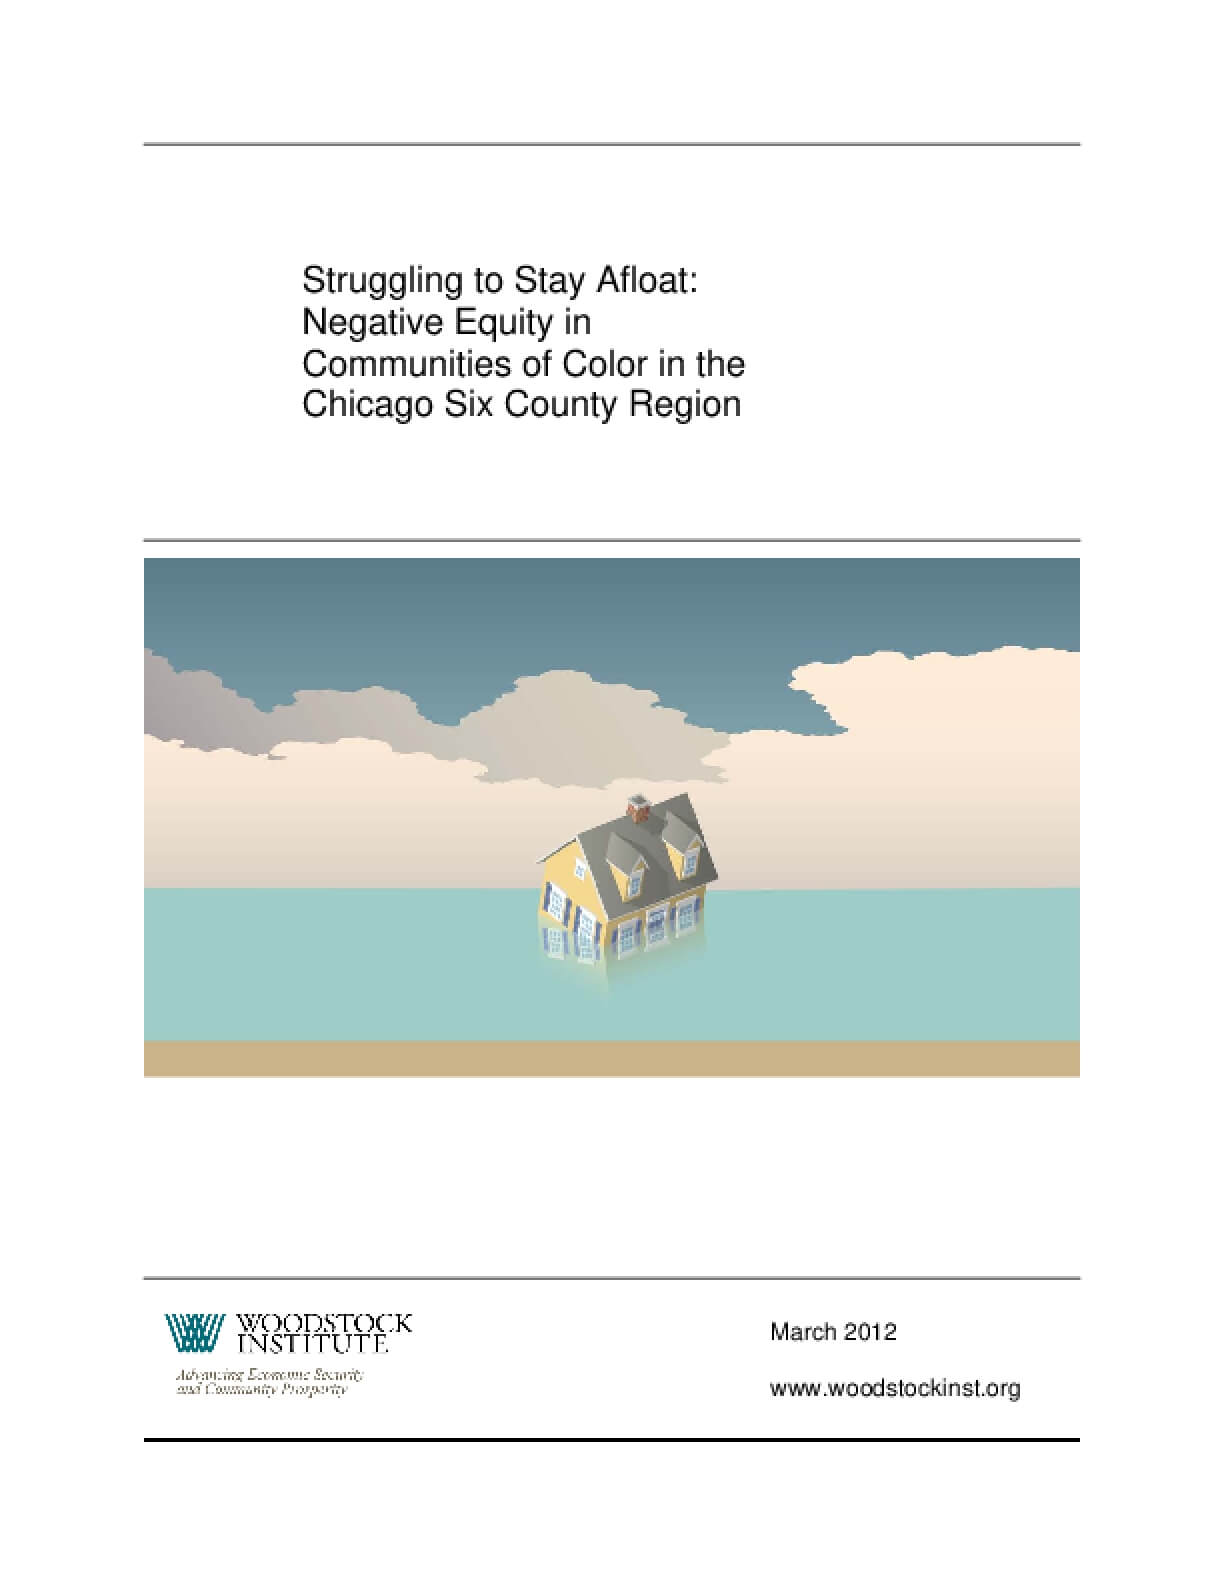 Struggling to Stay Afloat: Negative Equity in Communities of Color in the Chicago Six County Region